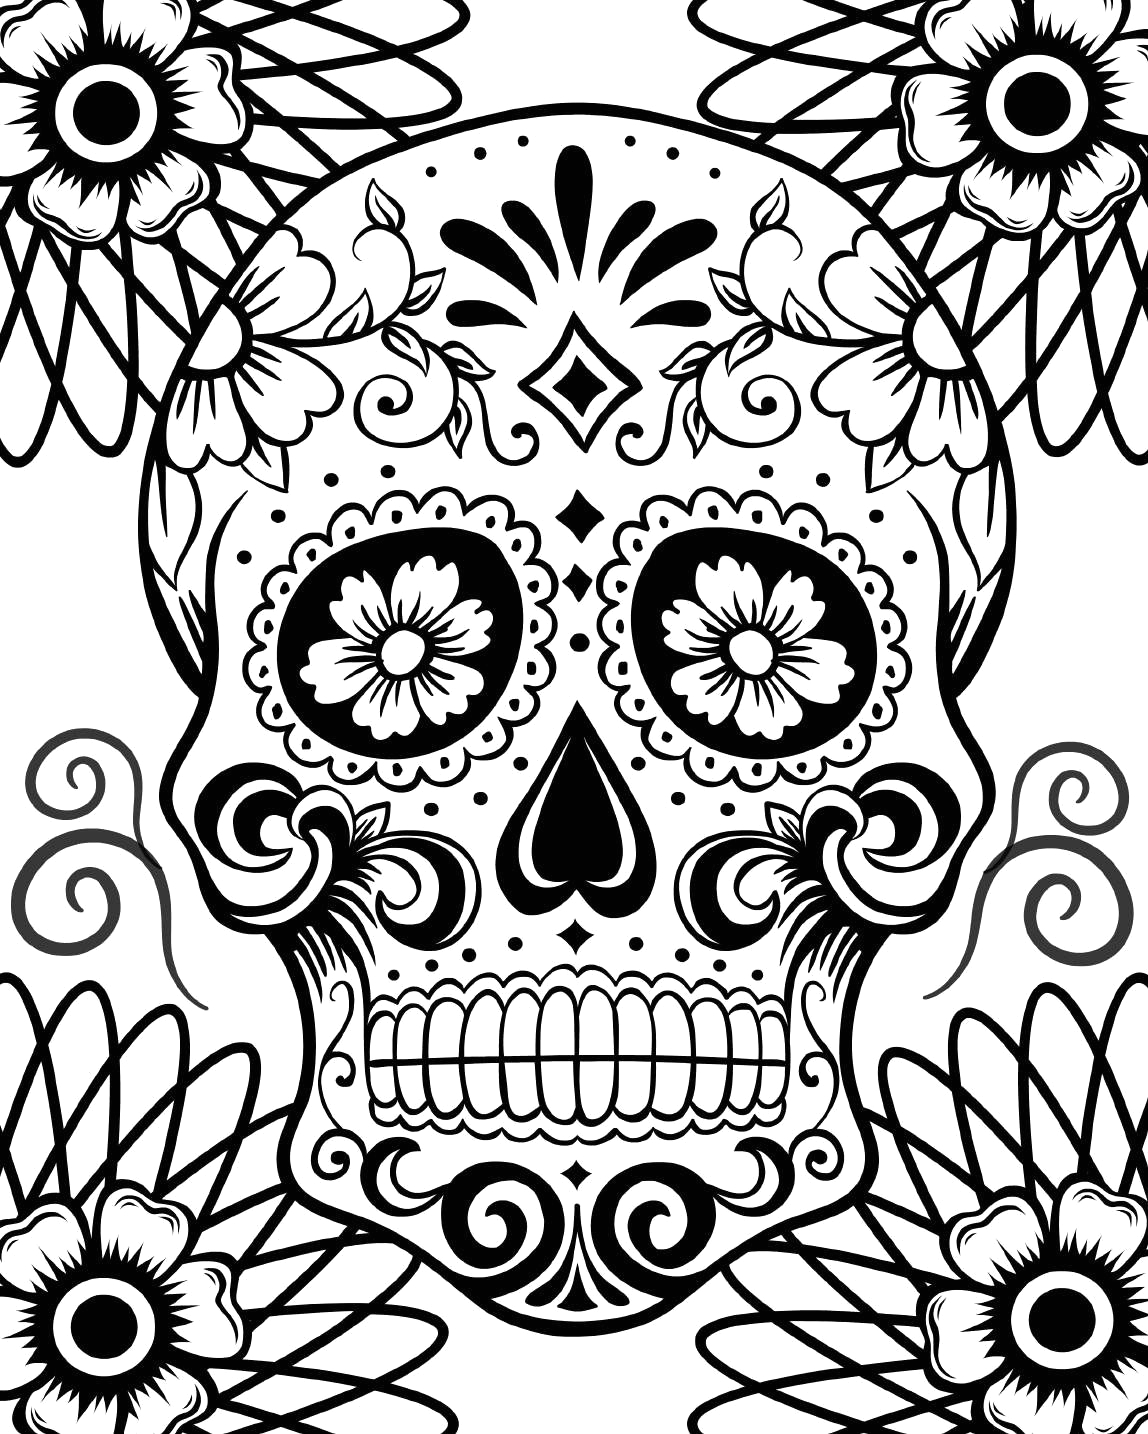 Free Printable Day Of the Dead Coloring Pages Free Printable Day Of the Dead Coloring Pages Best